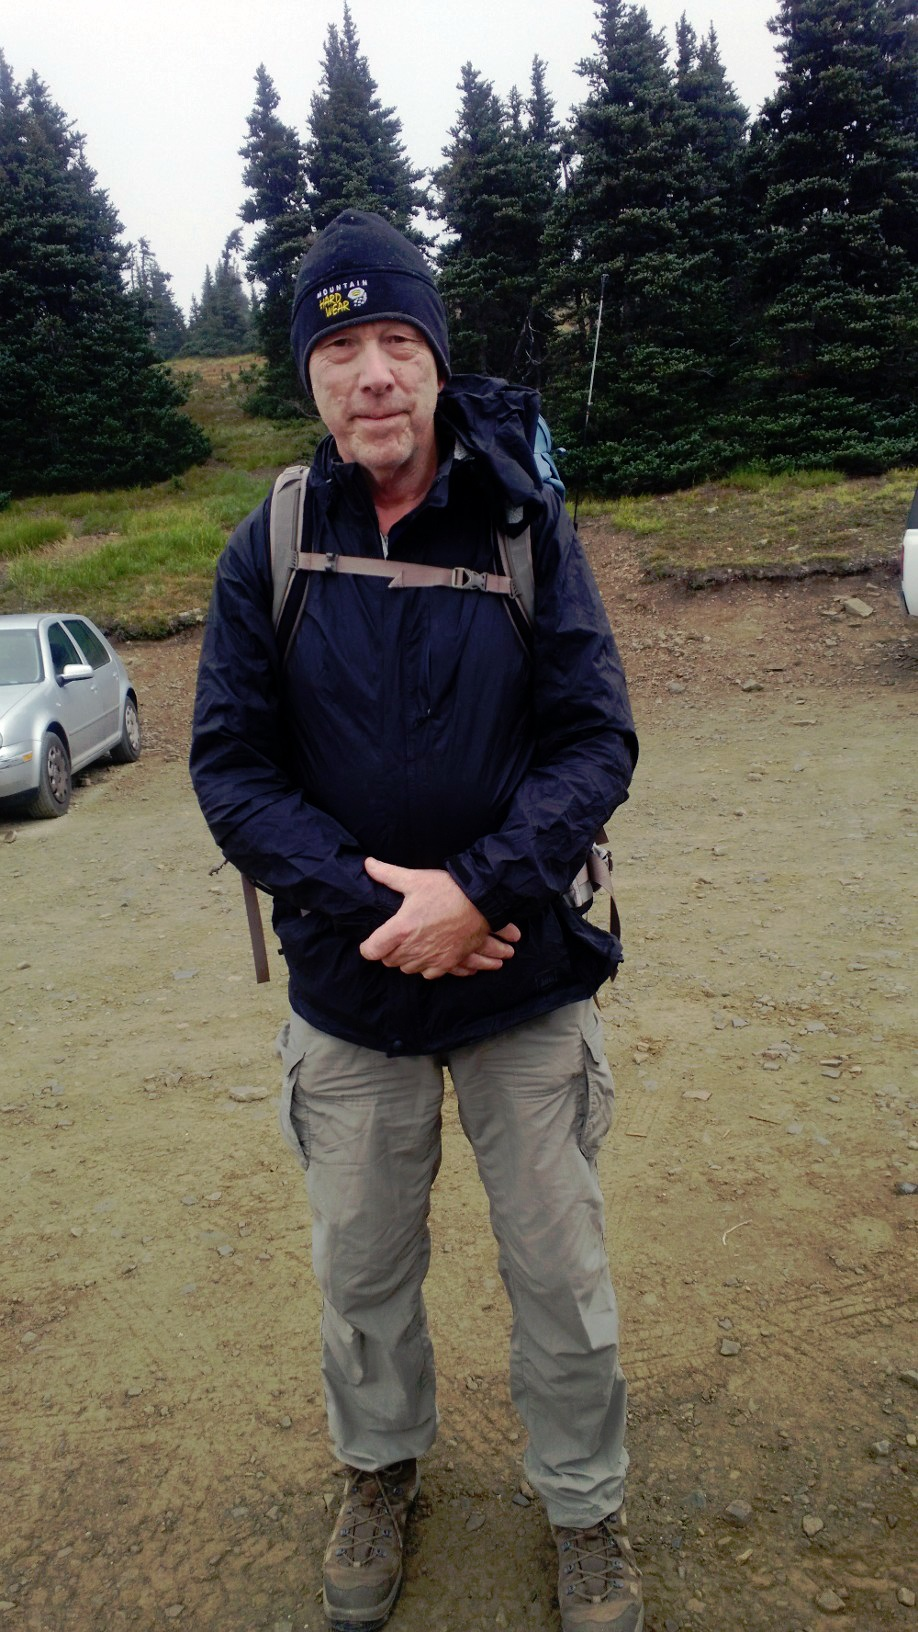 Search for missing hiker in Olympic National Park ends ...